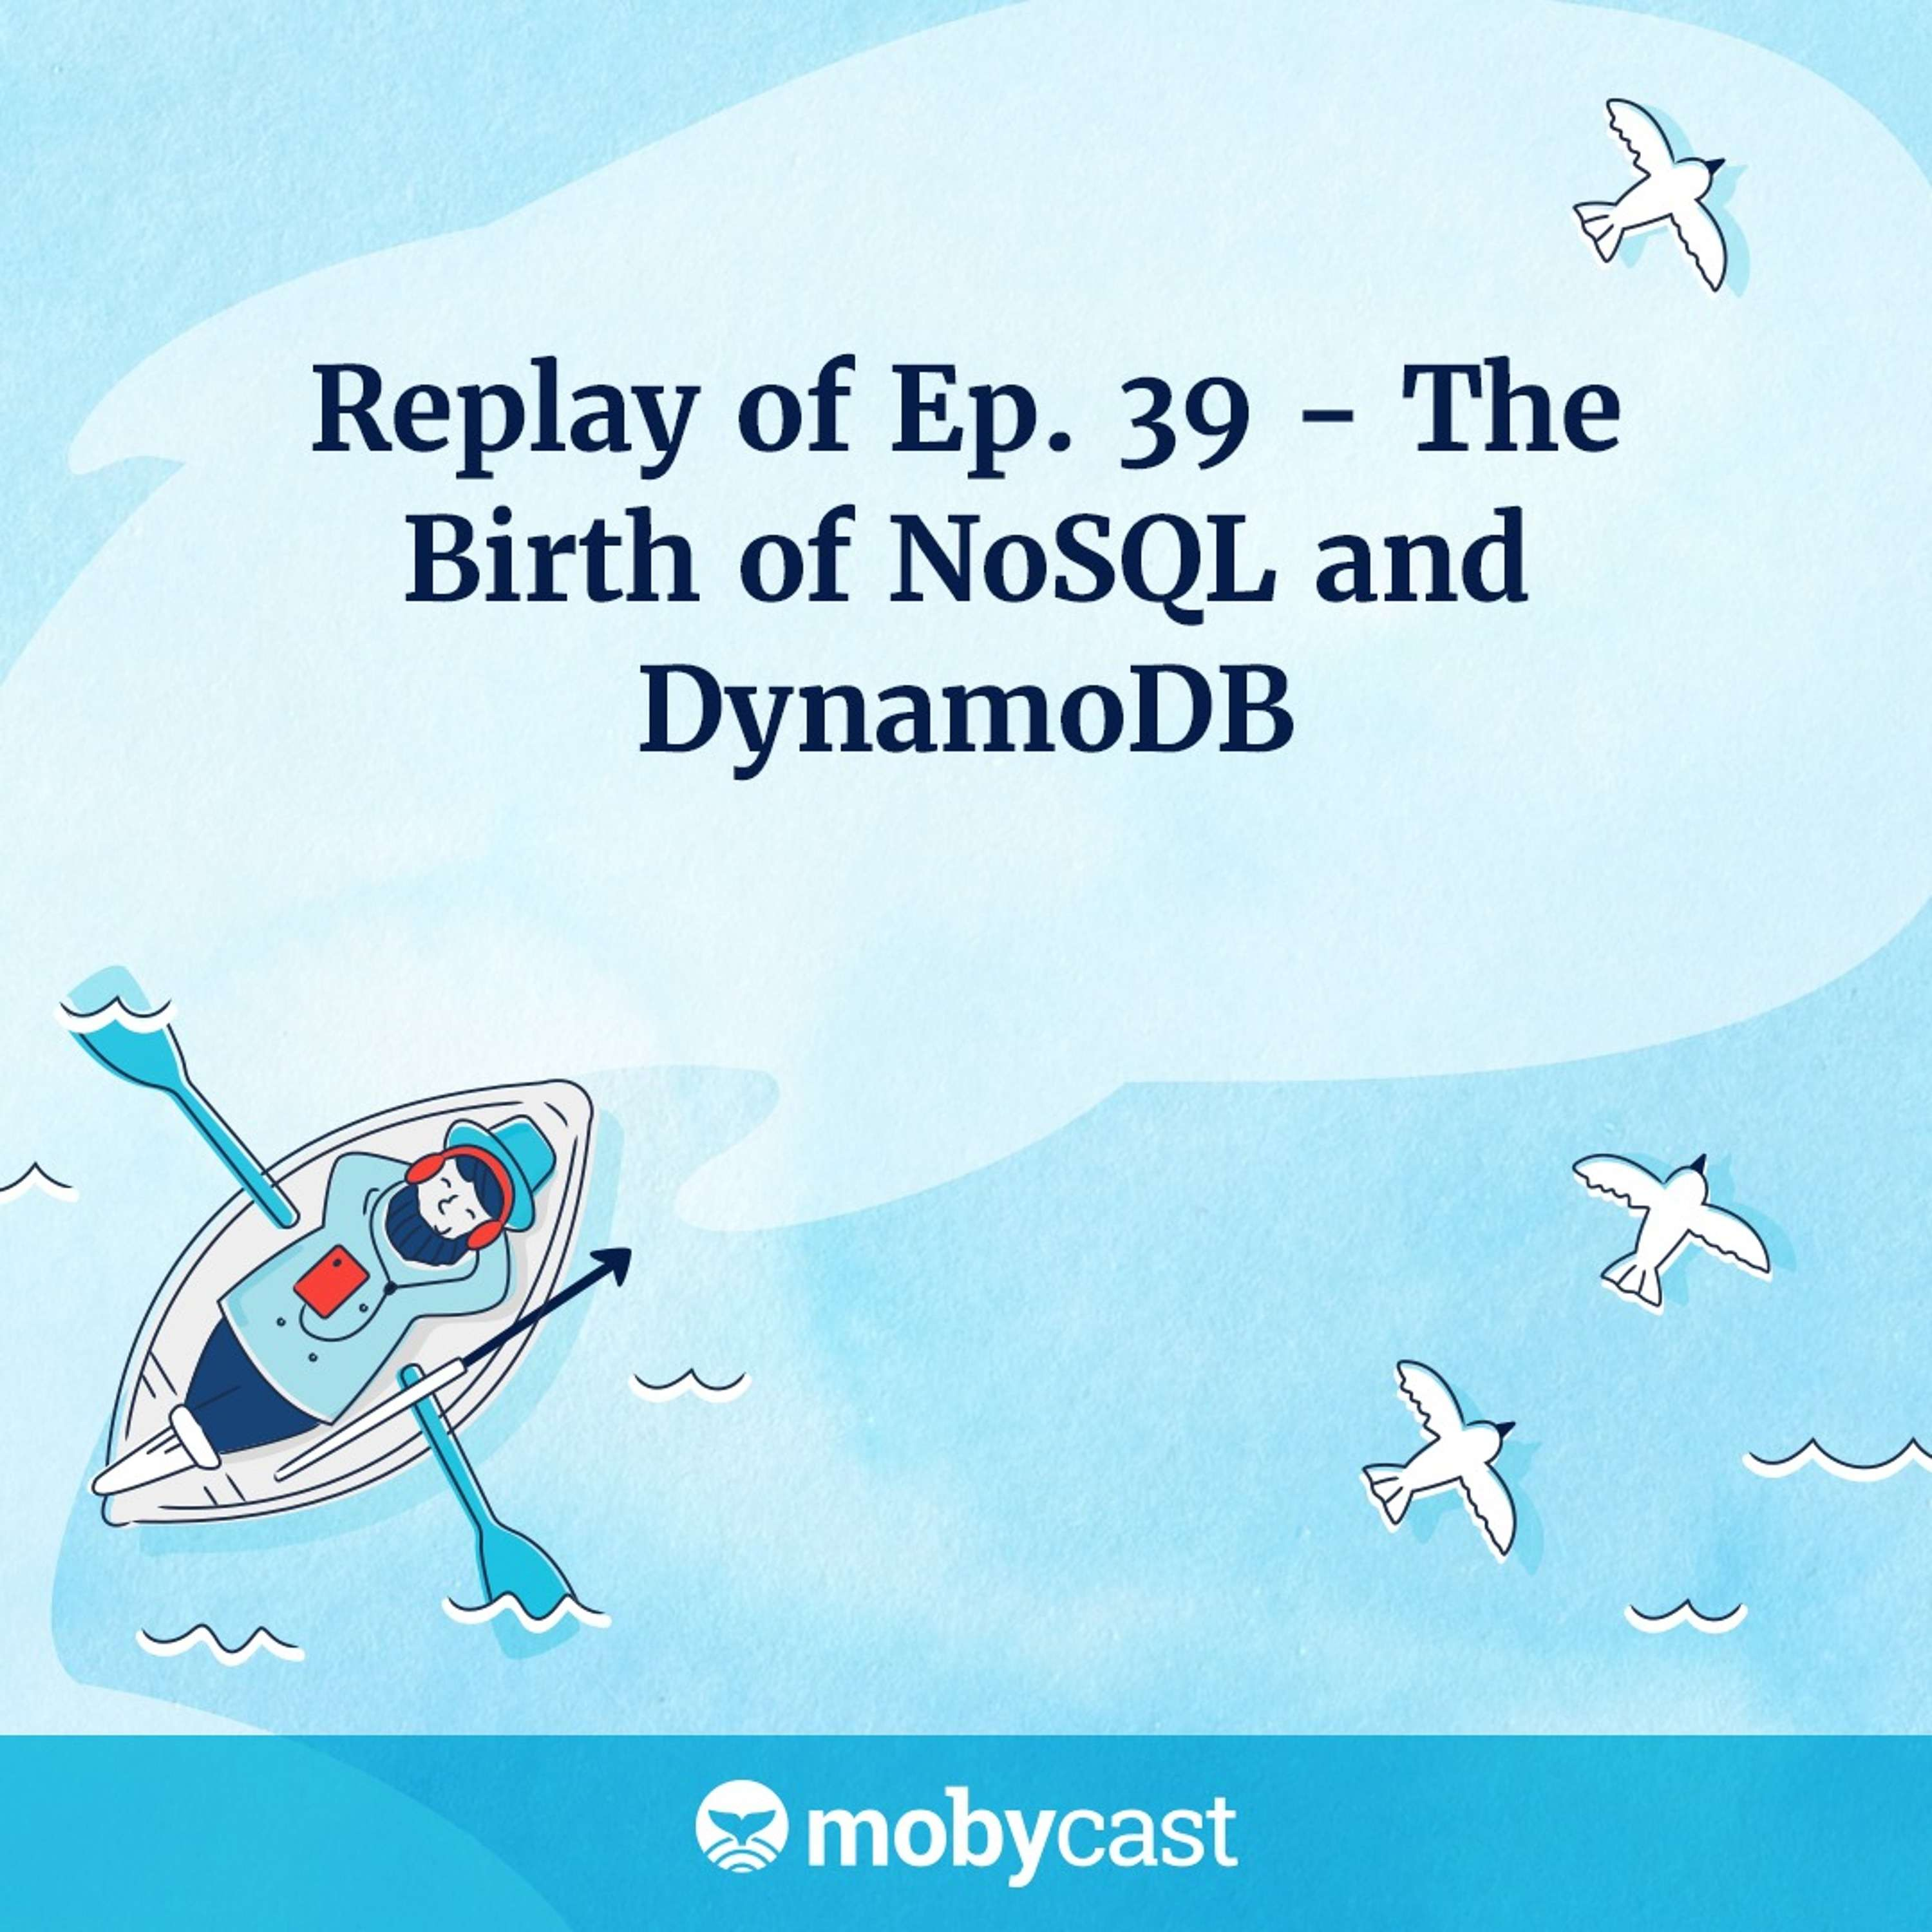 Replay of Ep 39 - The Birth of NoSQL and DynamoDB